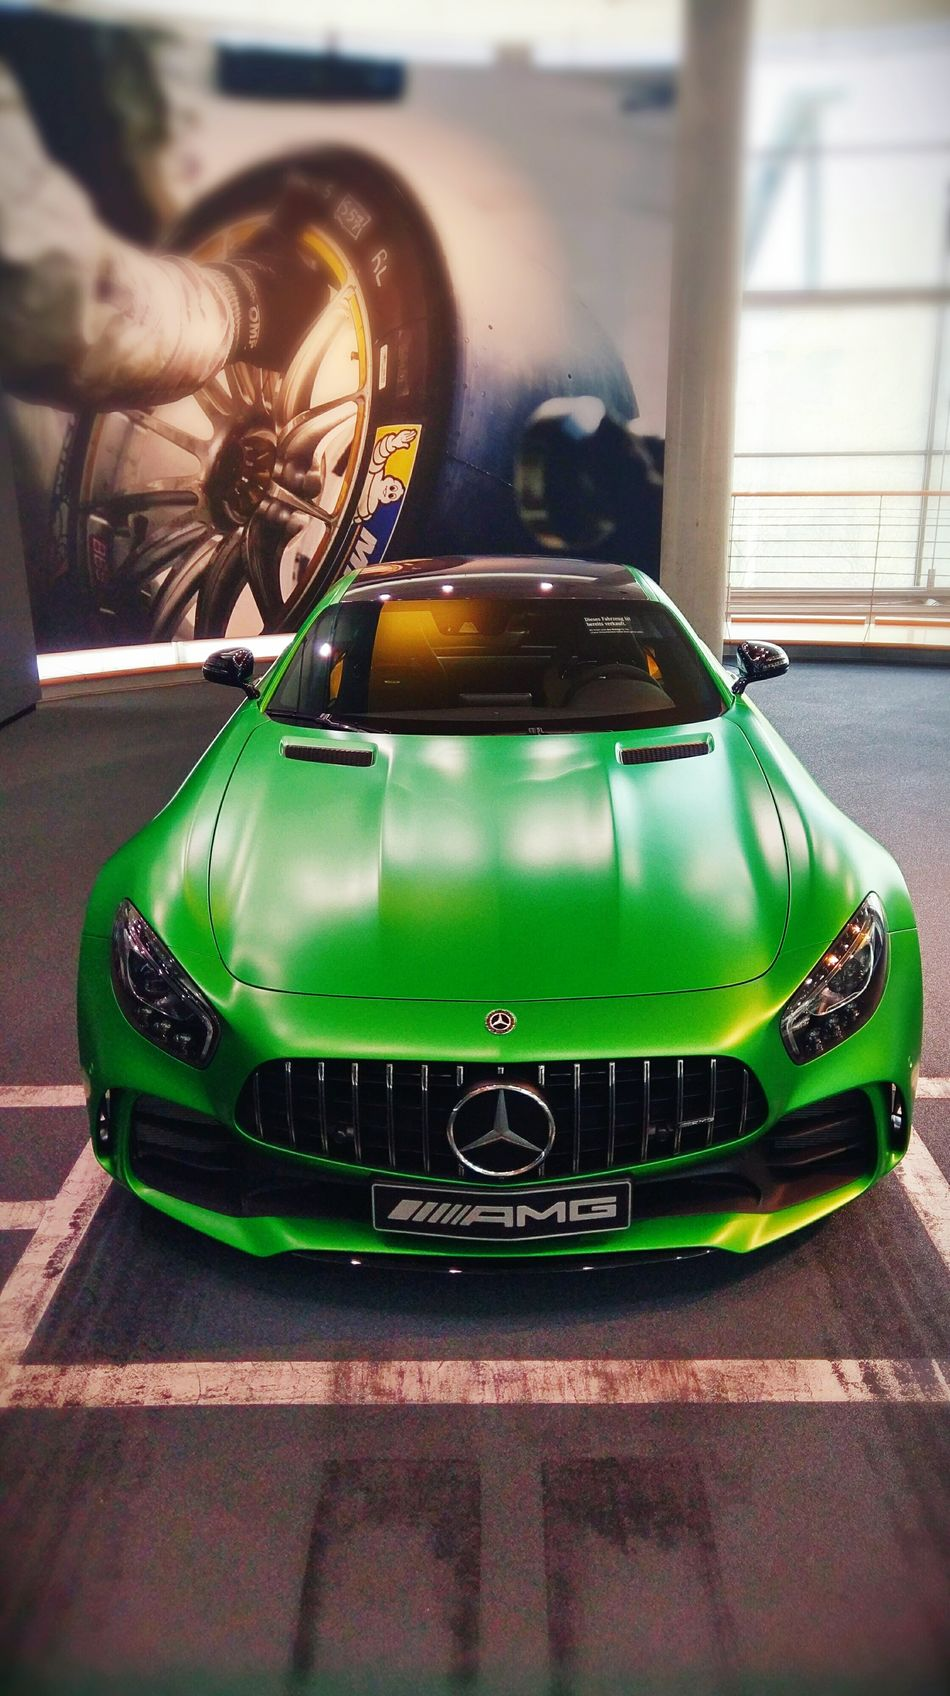 Beast Monster AMG AMG Power Amg Gt AMG GTR Best EyeEm Shot Beauty Car Indoors  Racecar No People Hanging Out Berlin Cool Taking Photos Mercedes-Benz Hot Automobile Cant Touch This Chill ✌️😘😚😽 Green Hell